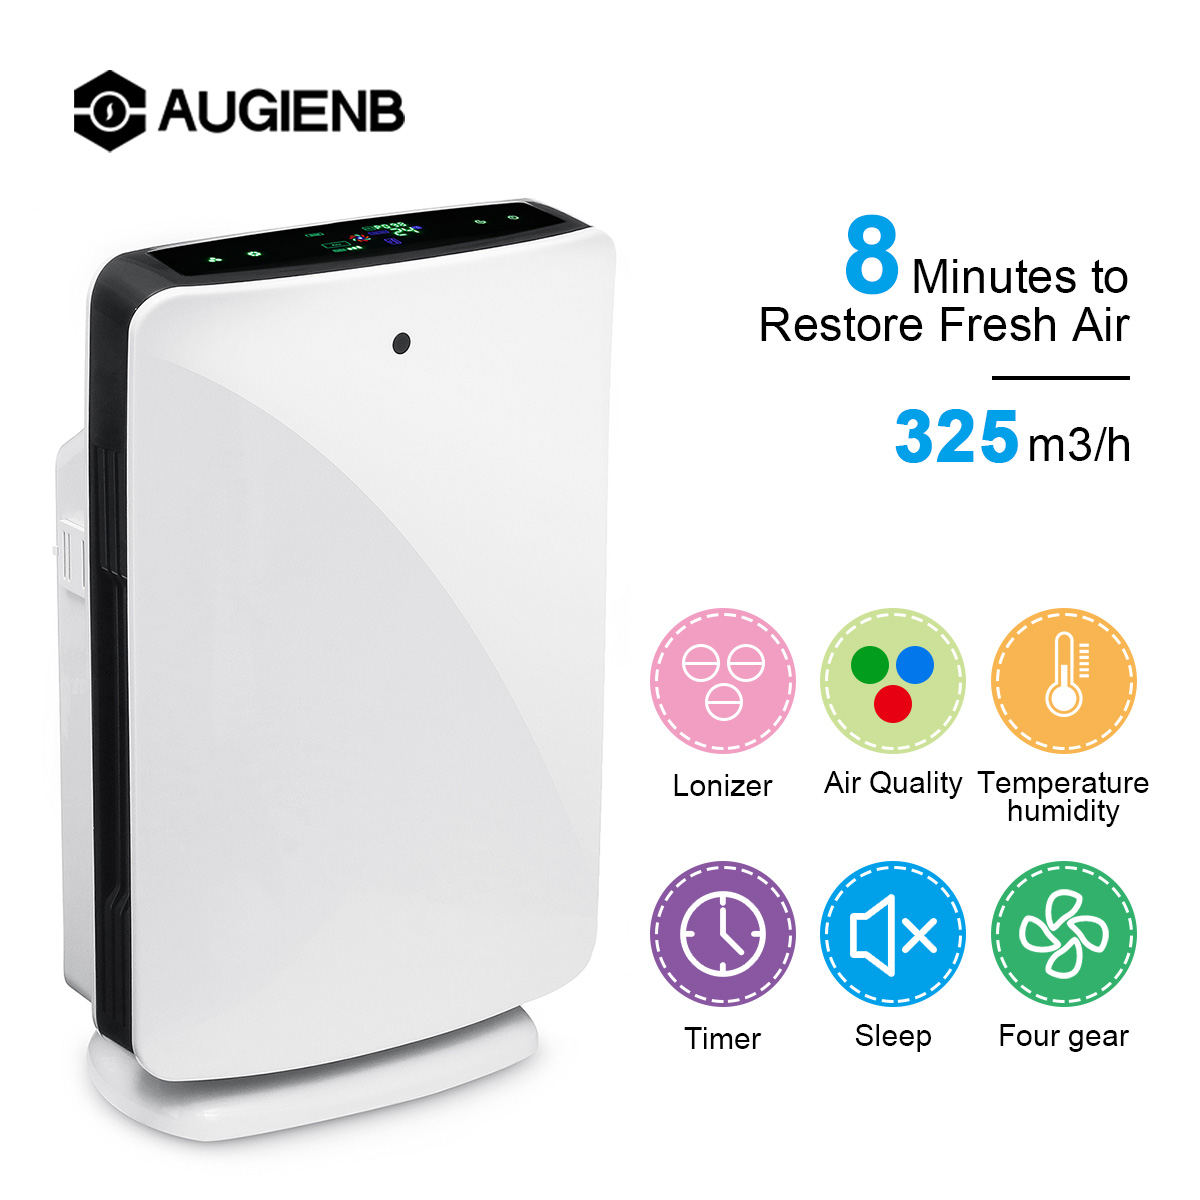 AUGIENB Home Office Air Purifier True HEPA Filter Odor Allergies Remover For Smoke, Dust, VOCs, Pollen, Pet Dander,PM2.5